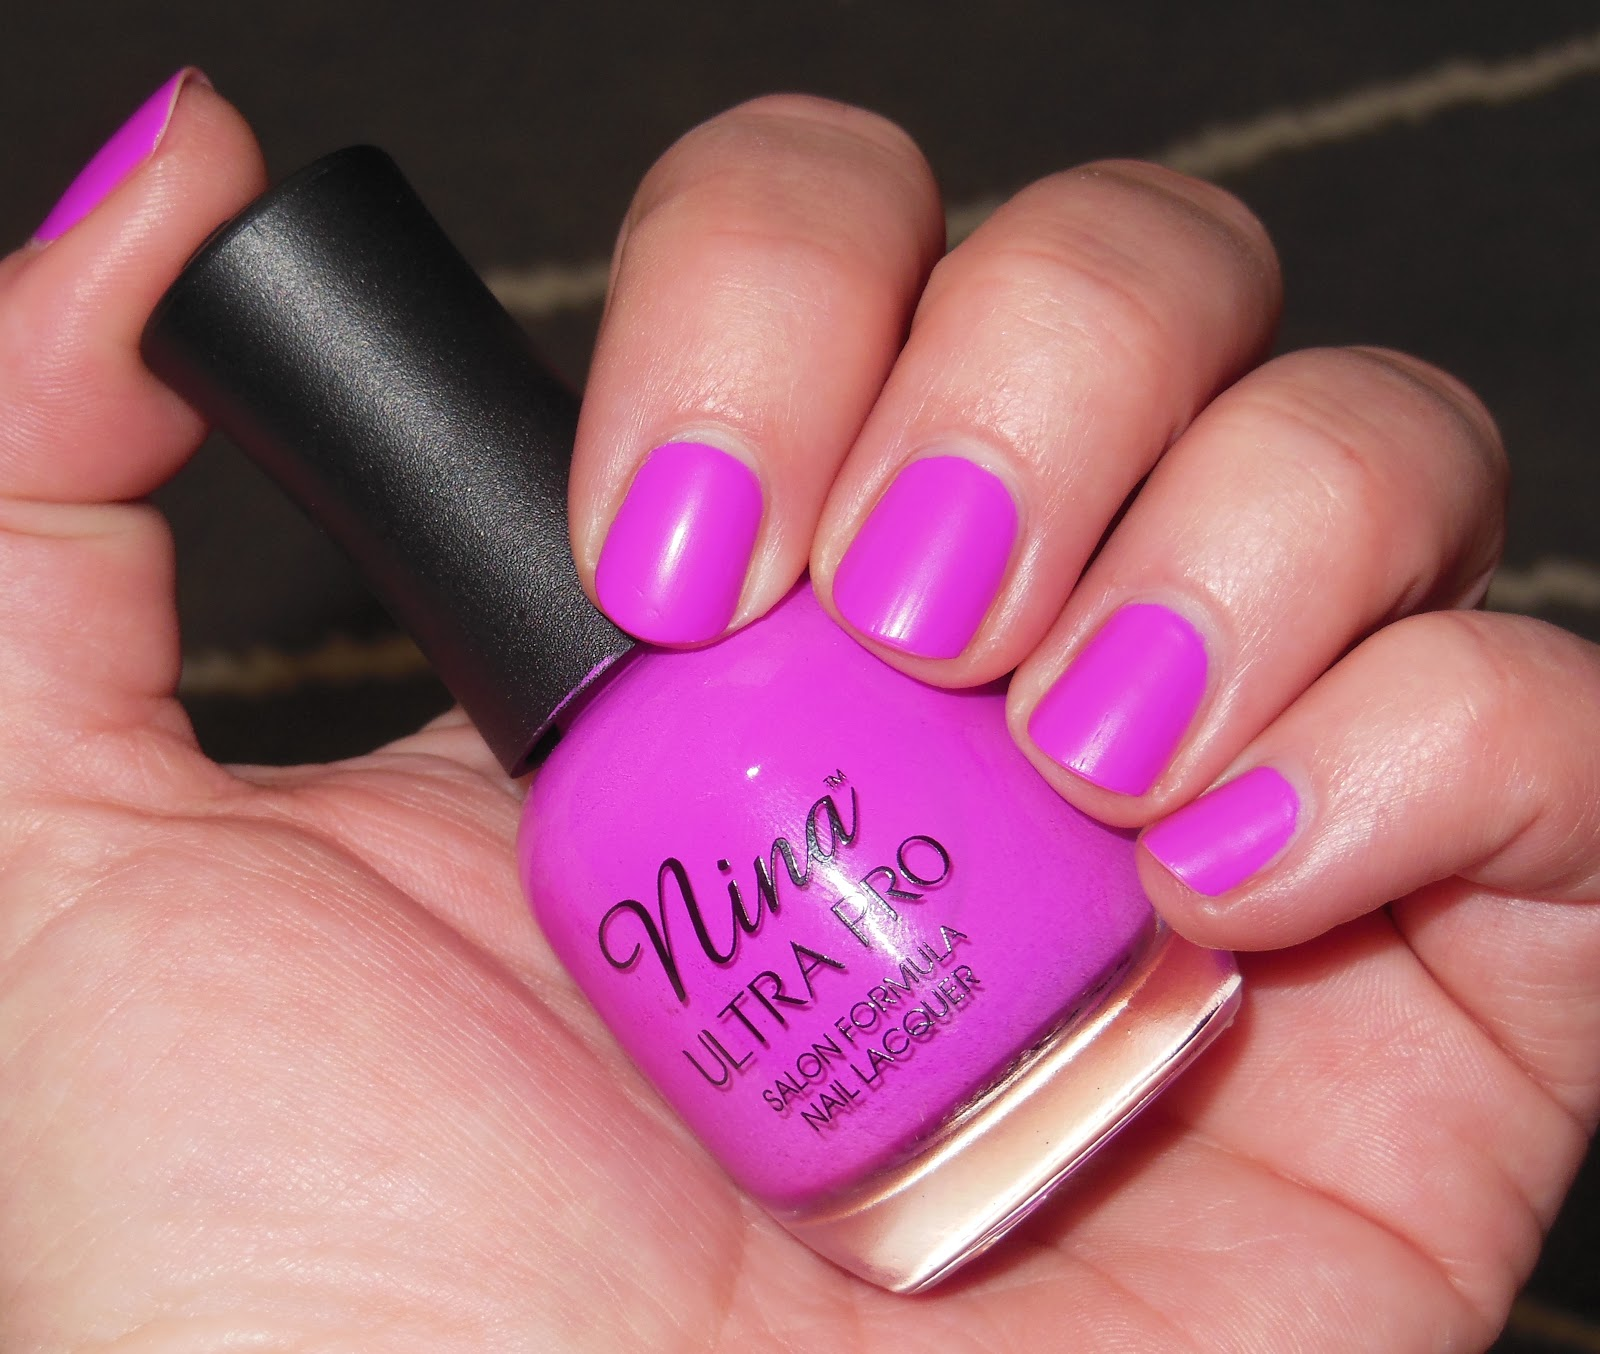 glambunctious!: REVIEW! | Nina Ultra Pro Nail Polish in Violet It Ride